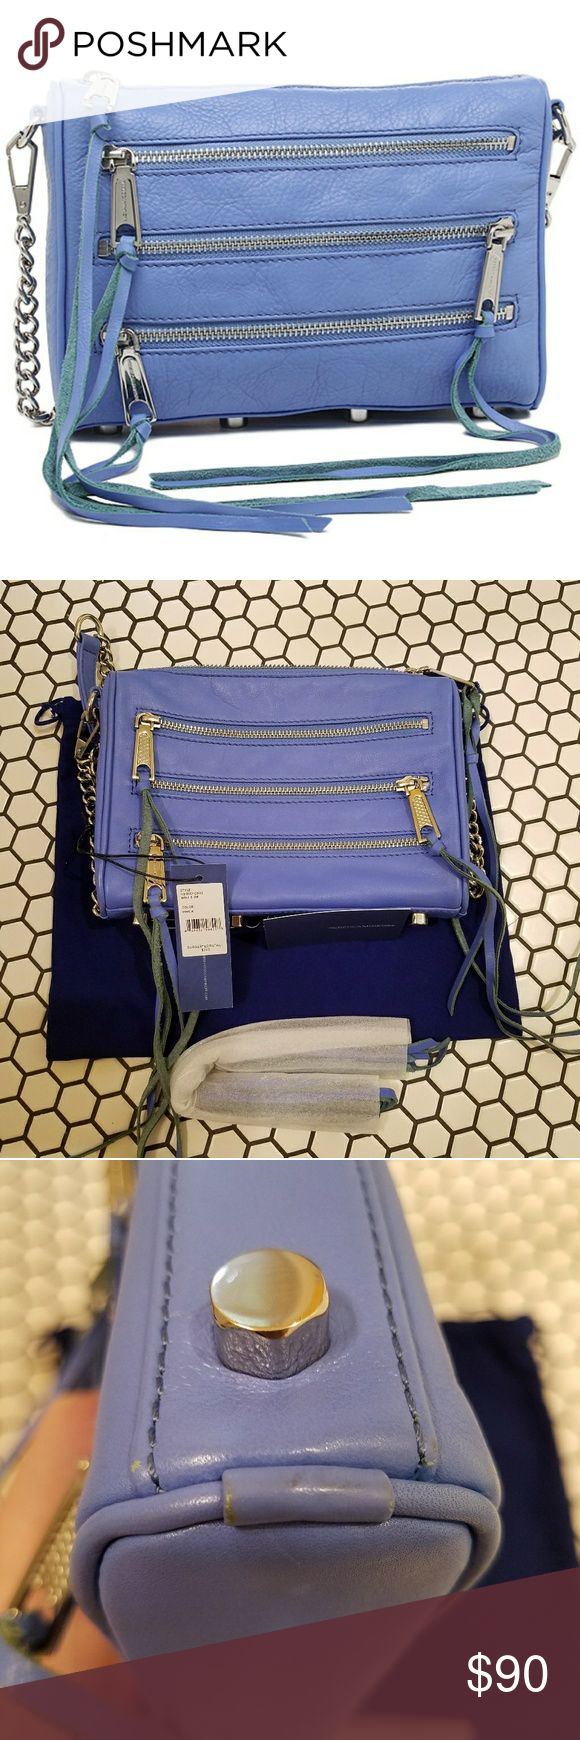 Rebecca Minkoff 5 zip crossbody VGUC, only worn a few times. Minor wear as shown. Interior is perfect. Color is VINCA with silver hardware. Original tag included with authenticity card, RM dust bag, and additional leather ties for the zippers. Purchased from Nordstrom. Rebecca Minkoff Bags Crossbody Bags